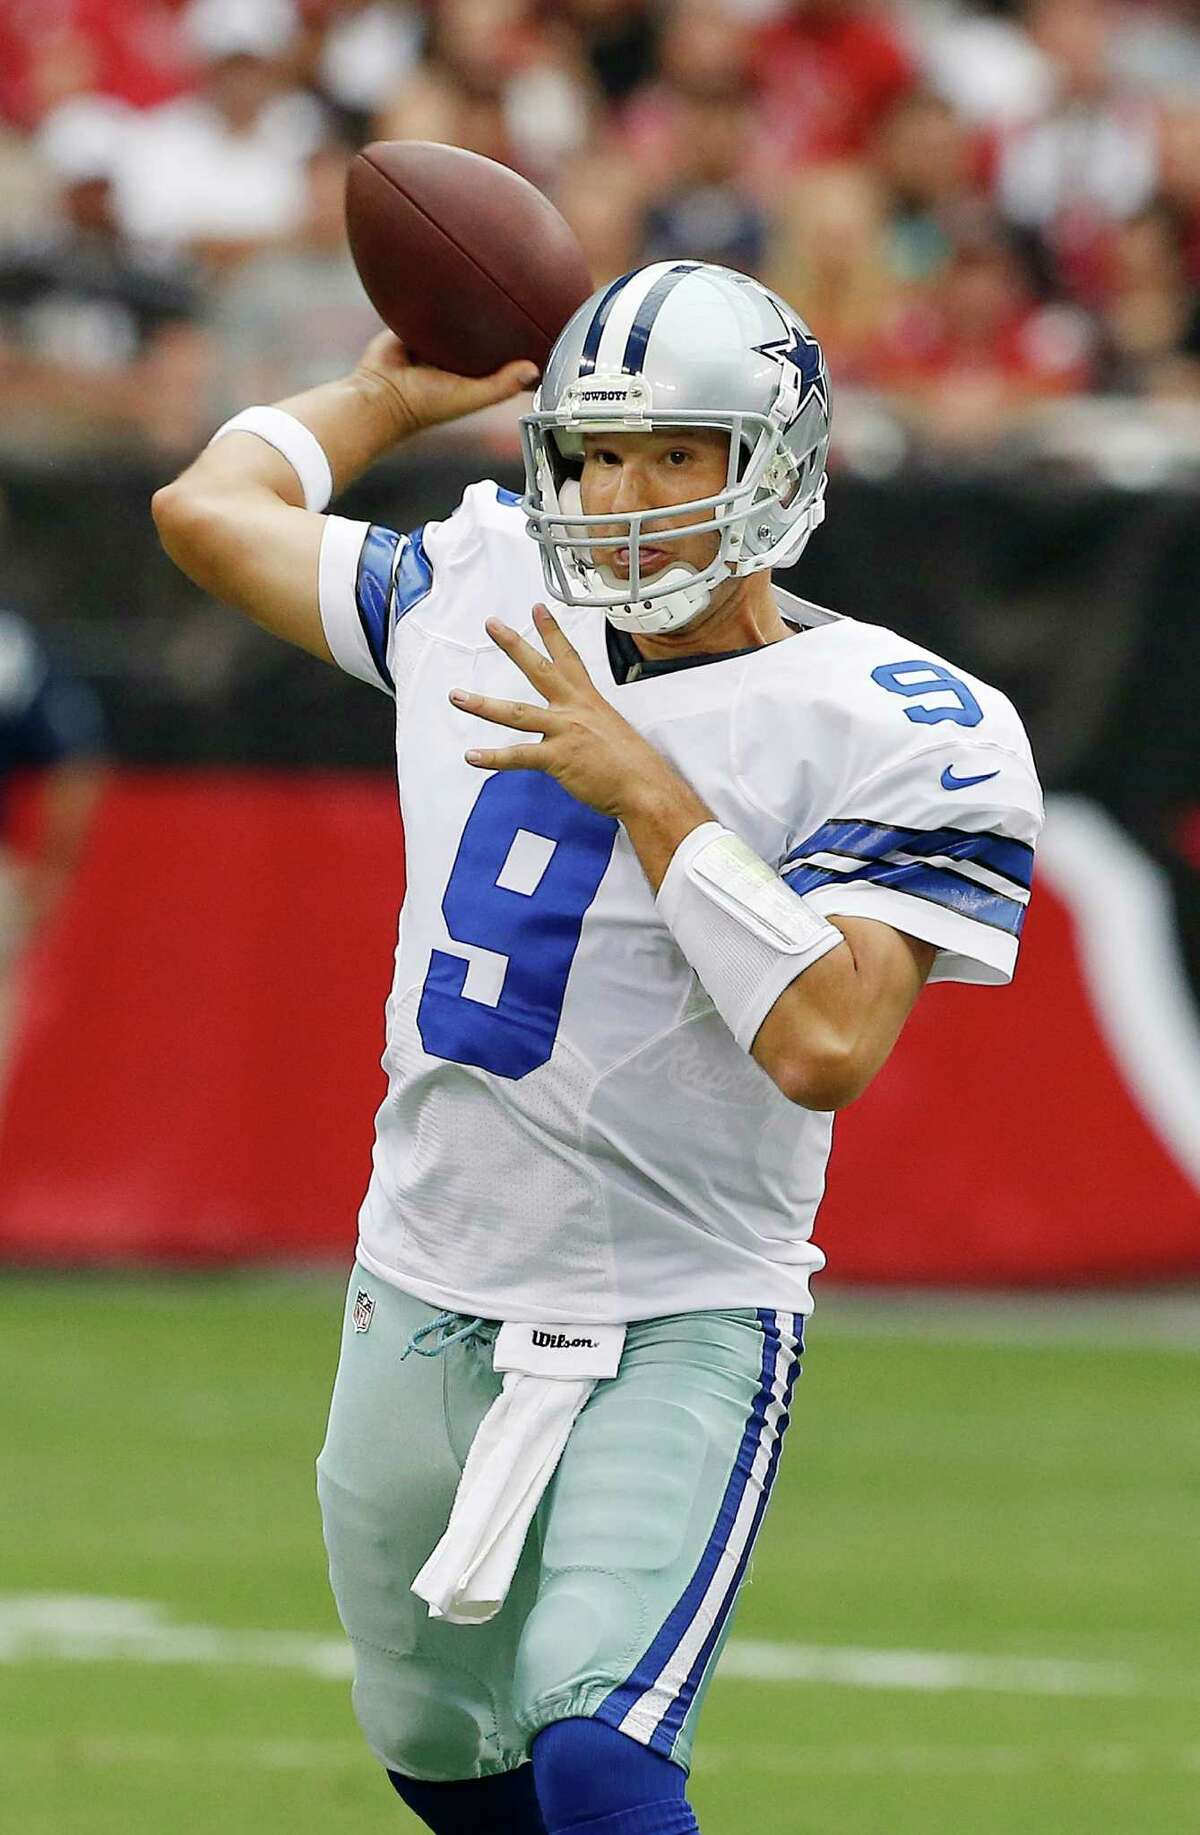 Dallas Cowboys' Tony Romo passes against the Arizona Cardinals in the first half during a preseason NFL football game on Saturday, Aug. 17, 2013, in Glendale, Ariz.